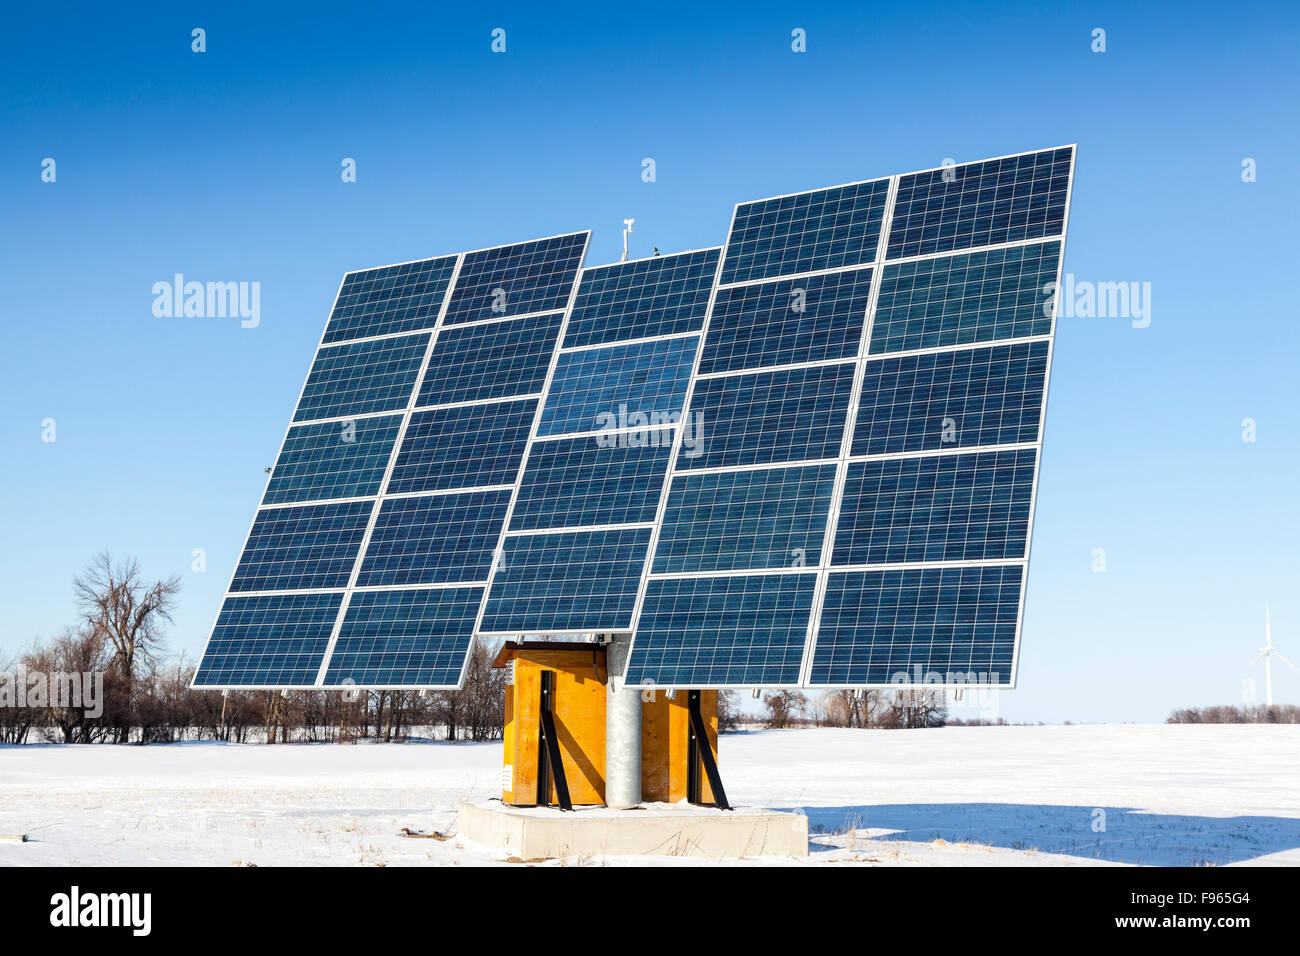 Solar panels and wind turbines on Wolfe Island, Ontario, Canada - Stock Image